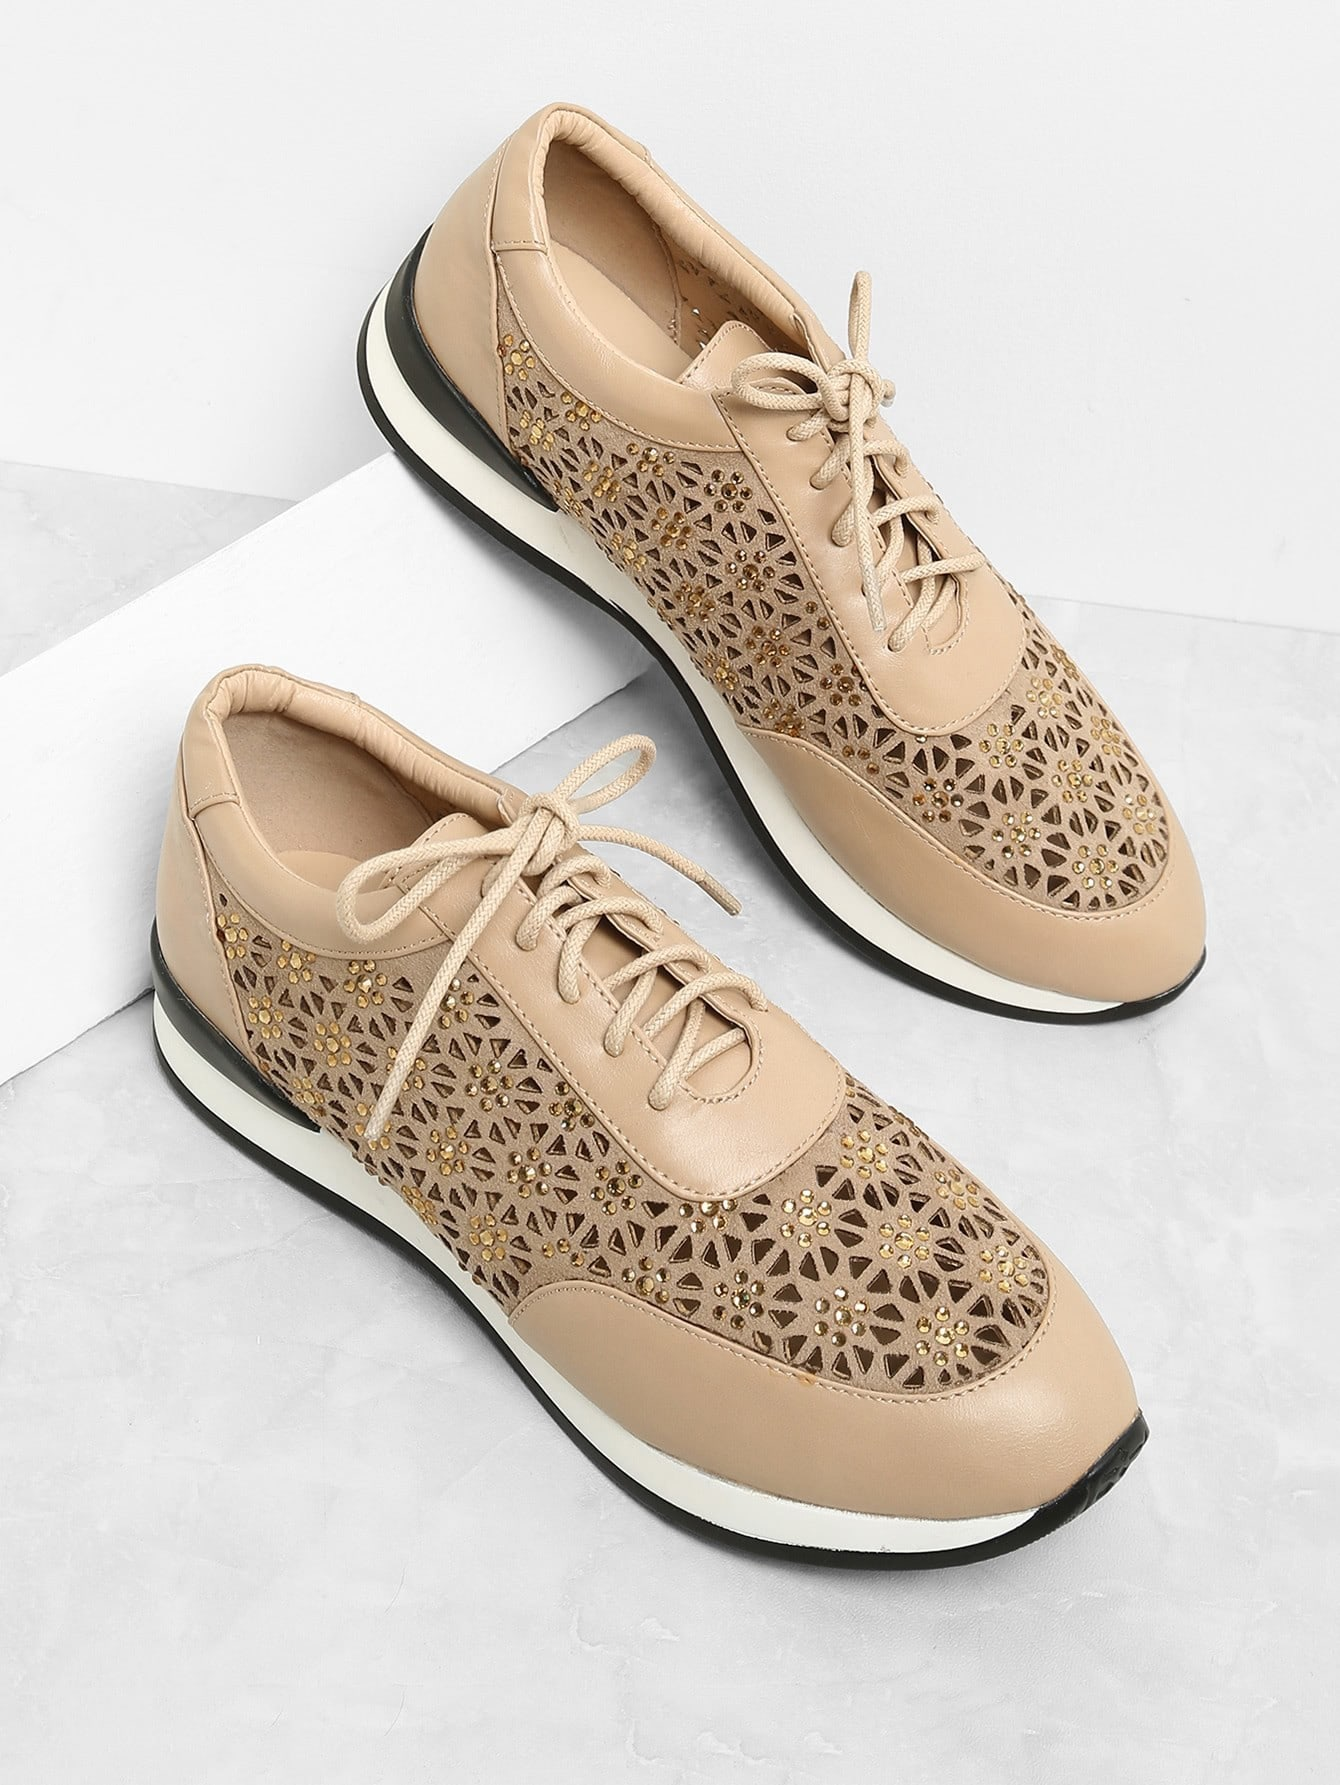 Laser Cutting Lace Up Sneakers rd 6442 laser controller main board for co2 laser cutting machine